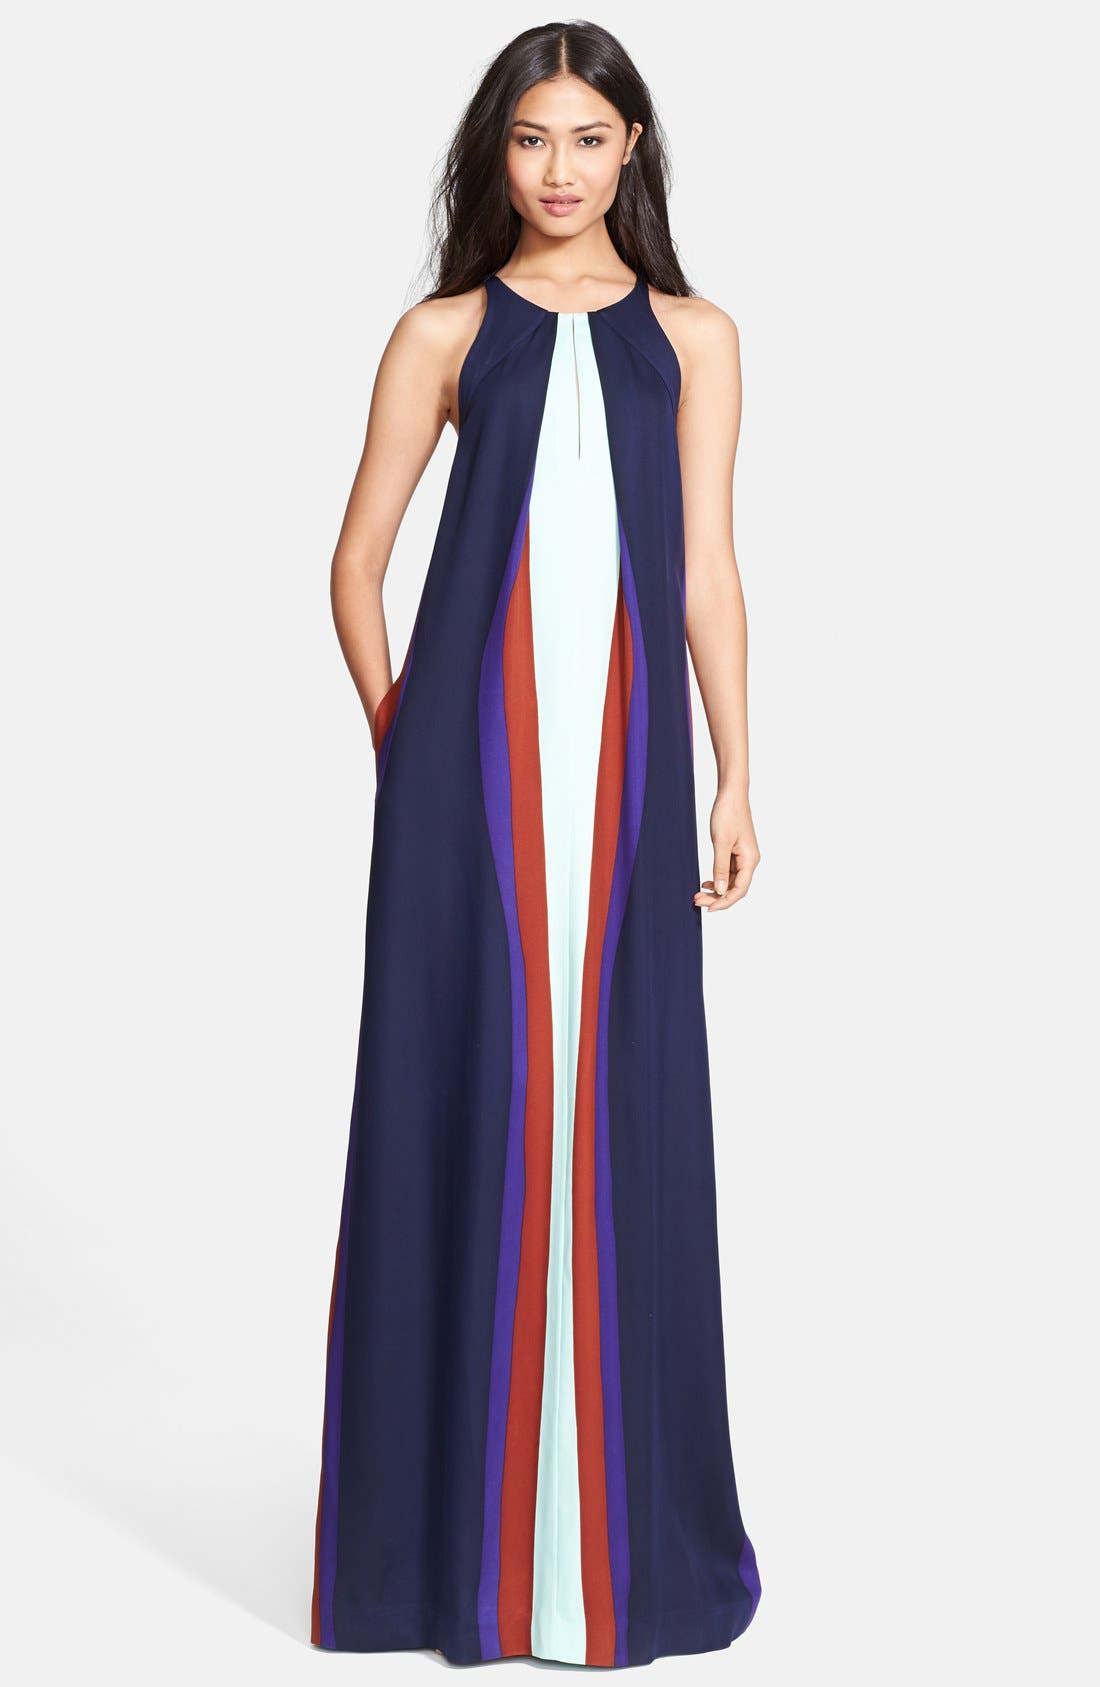 Alternate Image 1 Selected - Diane von Furstenberg 'Jordan' Print Stretch Silk Maxi Dress